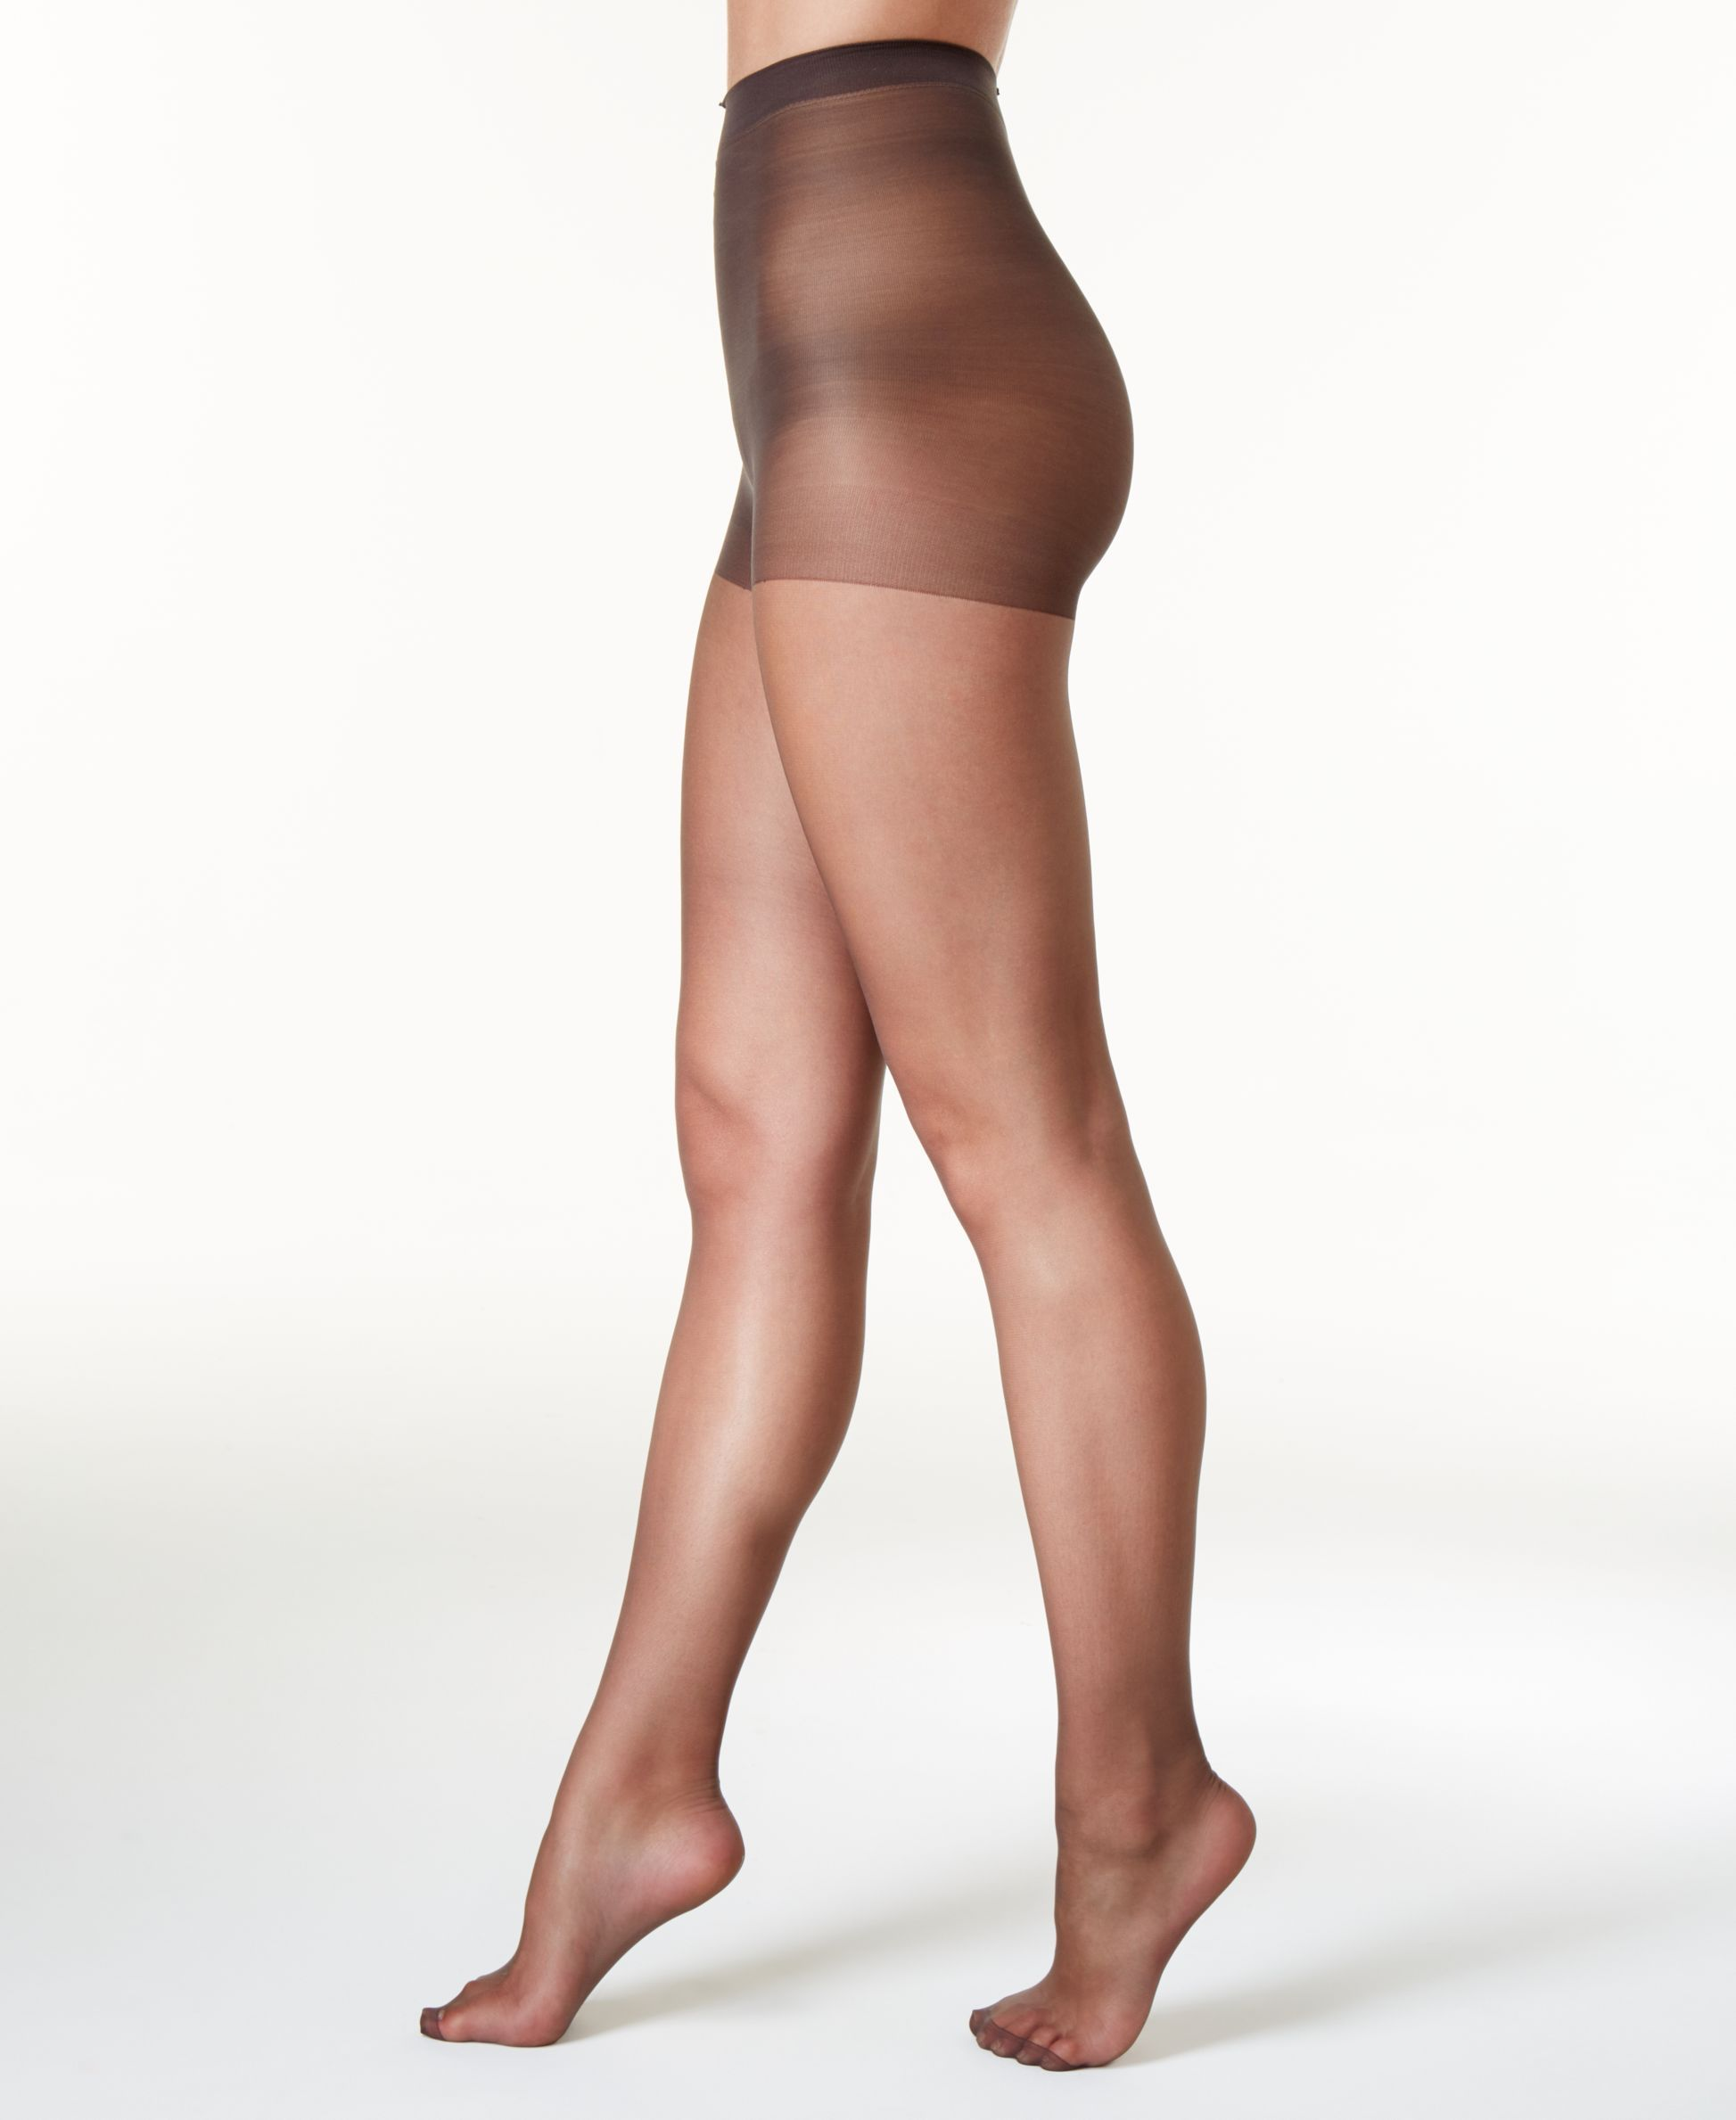 Silk Reflections Sheer Toe Pantyhose